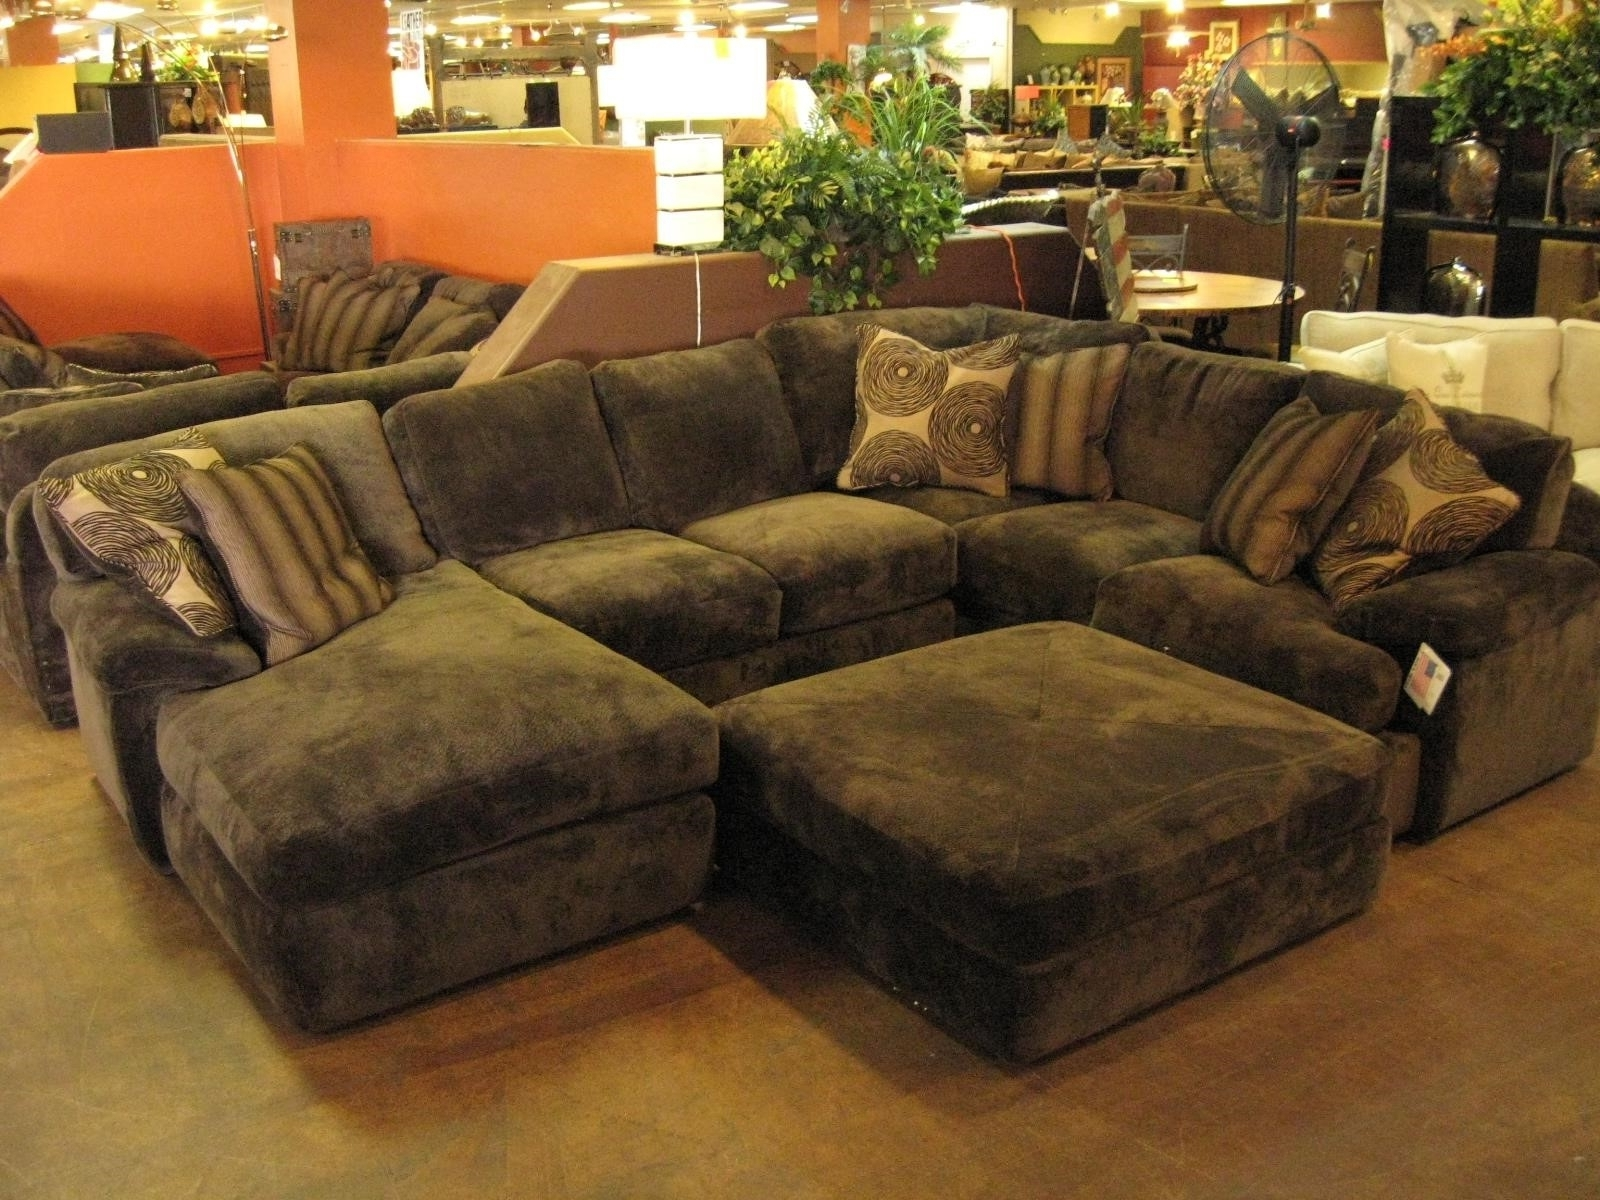 Sofa Extra Large Sectional With Chaise And Ottoman U Shaped With Preferred Sectional Couches With Large Ottoman (View 8 of 15)